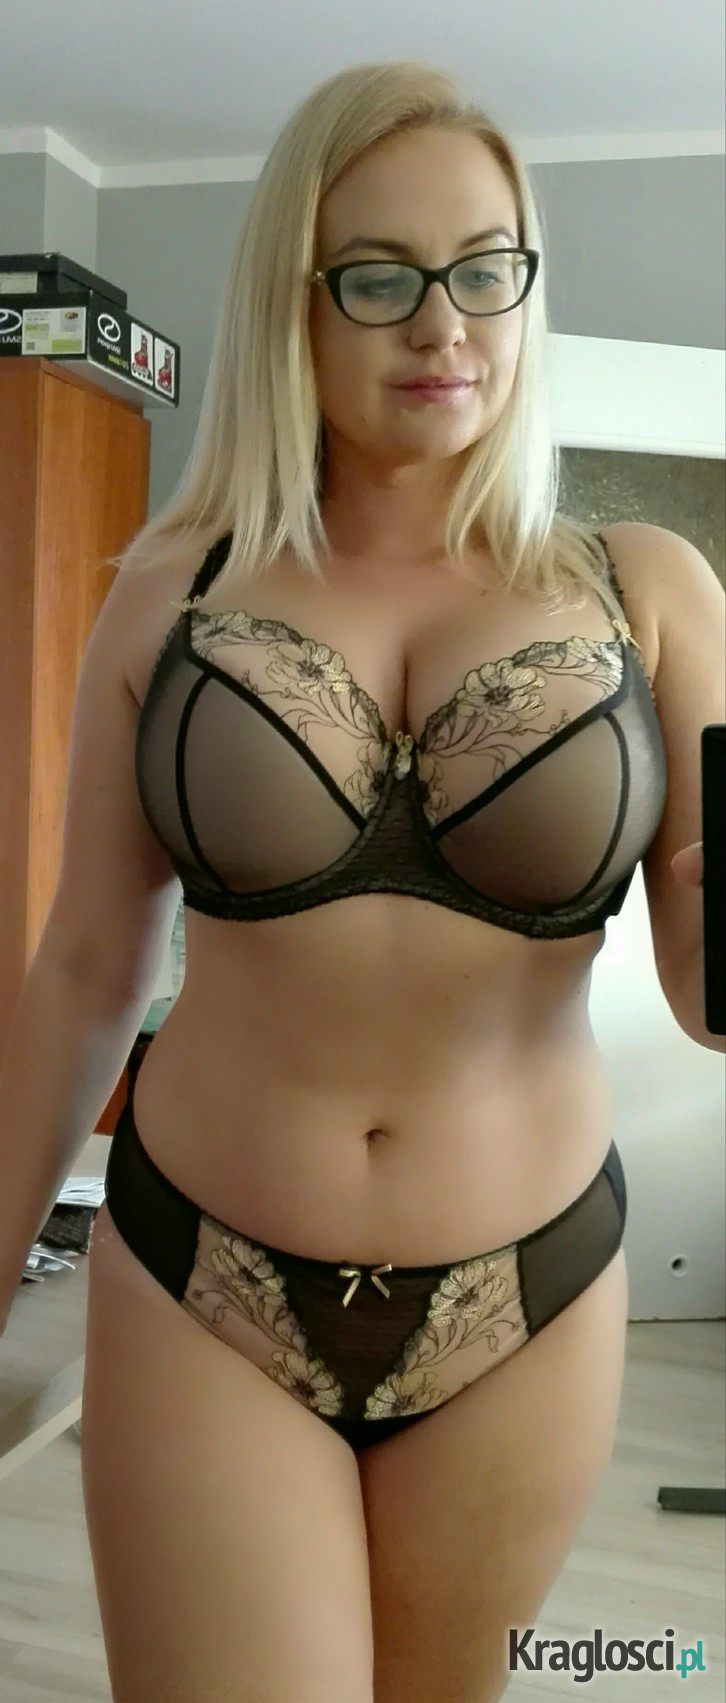 valders milf personals Watch milf from dating site - 7 pics at xhamstercom blonde milf from dating site sent me these pics of her tits and pussy.